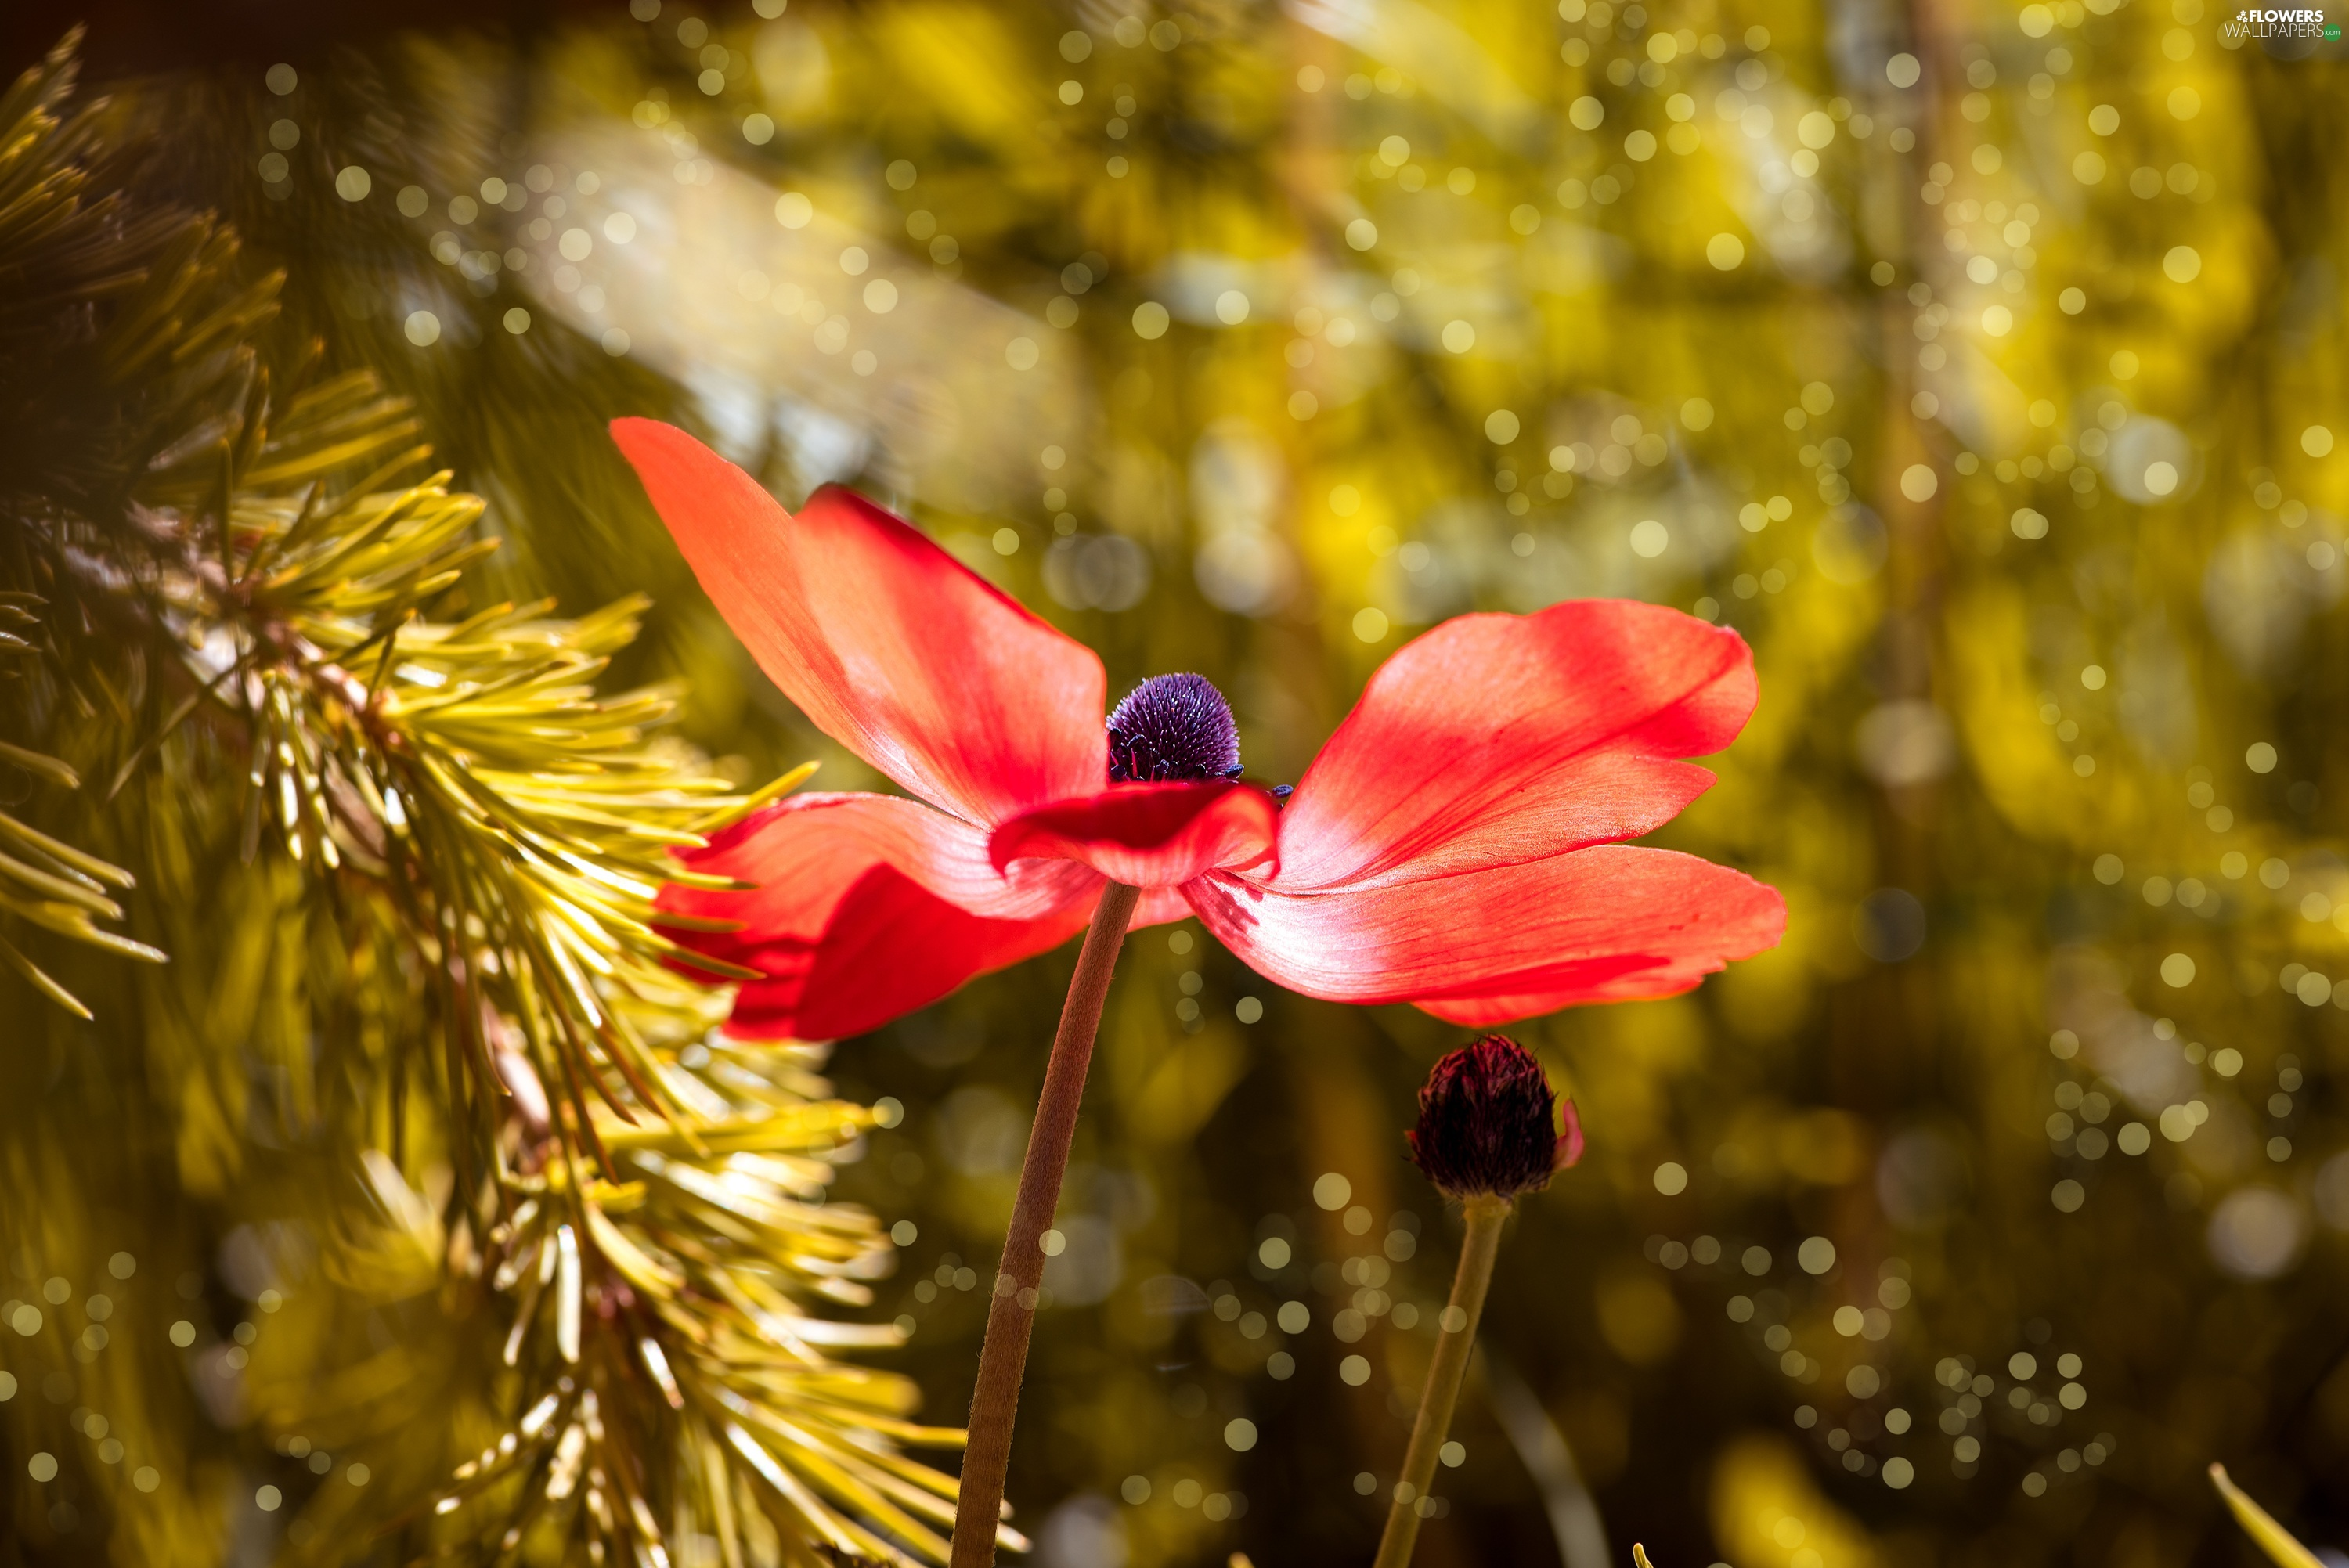 anemone, twig, luminosity, ligh, flash, Red, Colourfull Flowers, sun